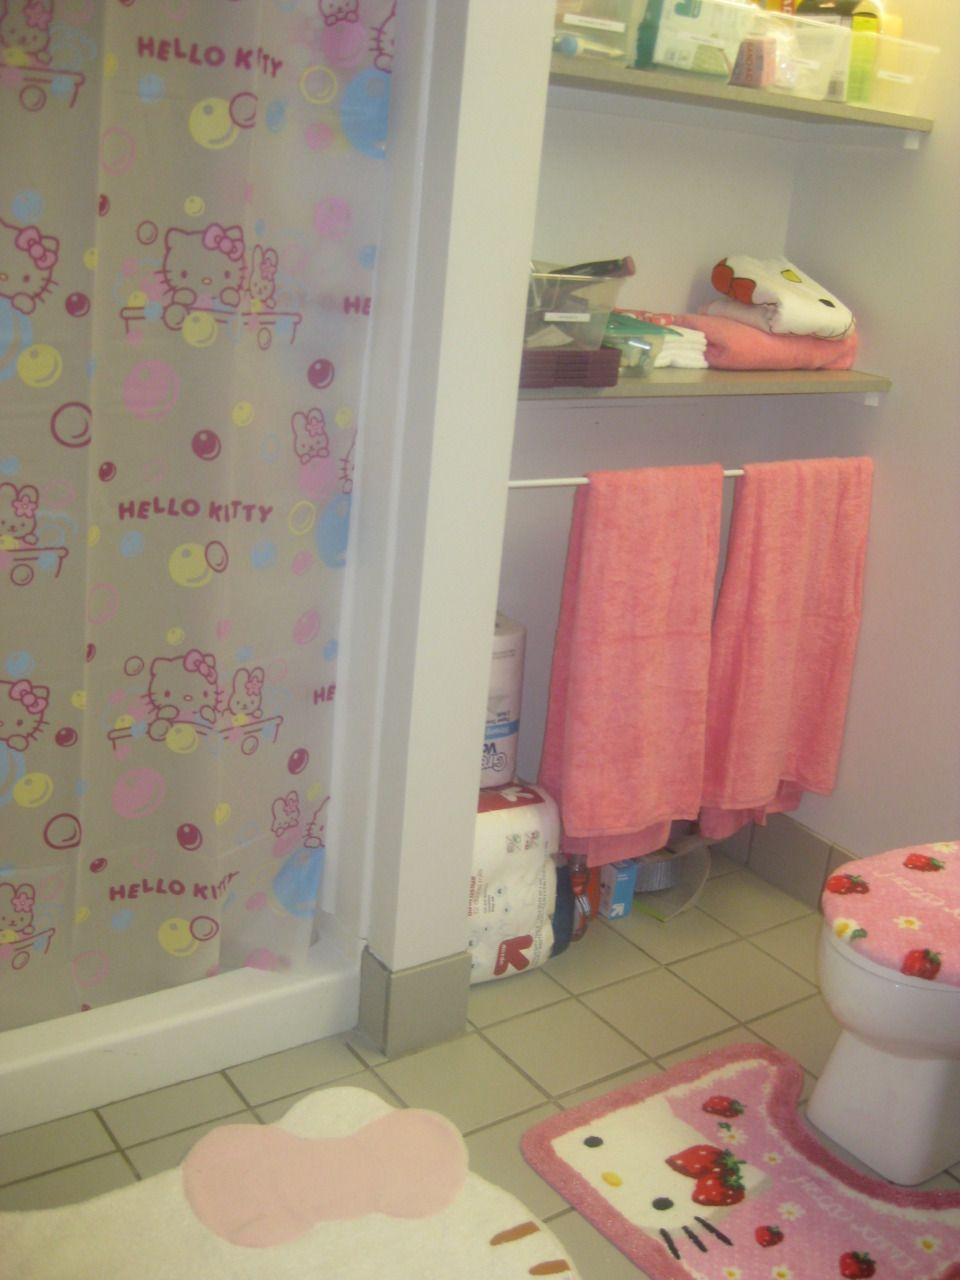 Hello kitty dining room  Okay not just the kitchen The WHOLE HOUSE  Hello Kitty uc